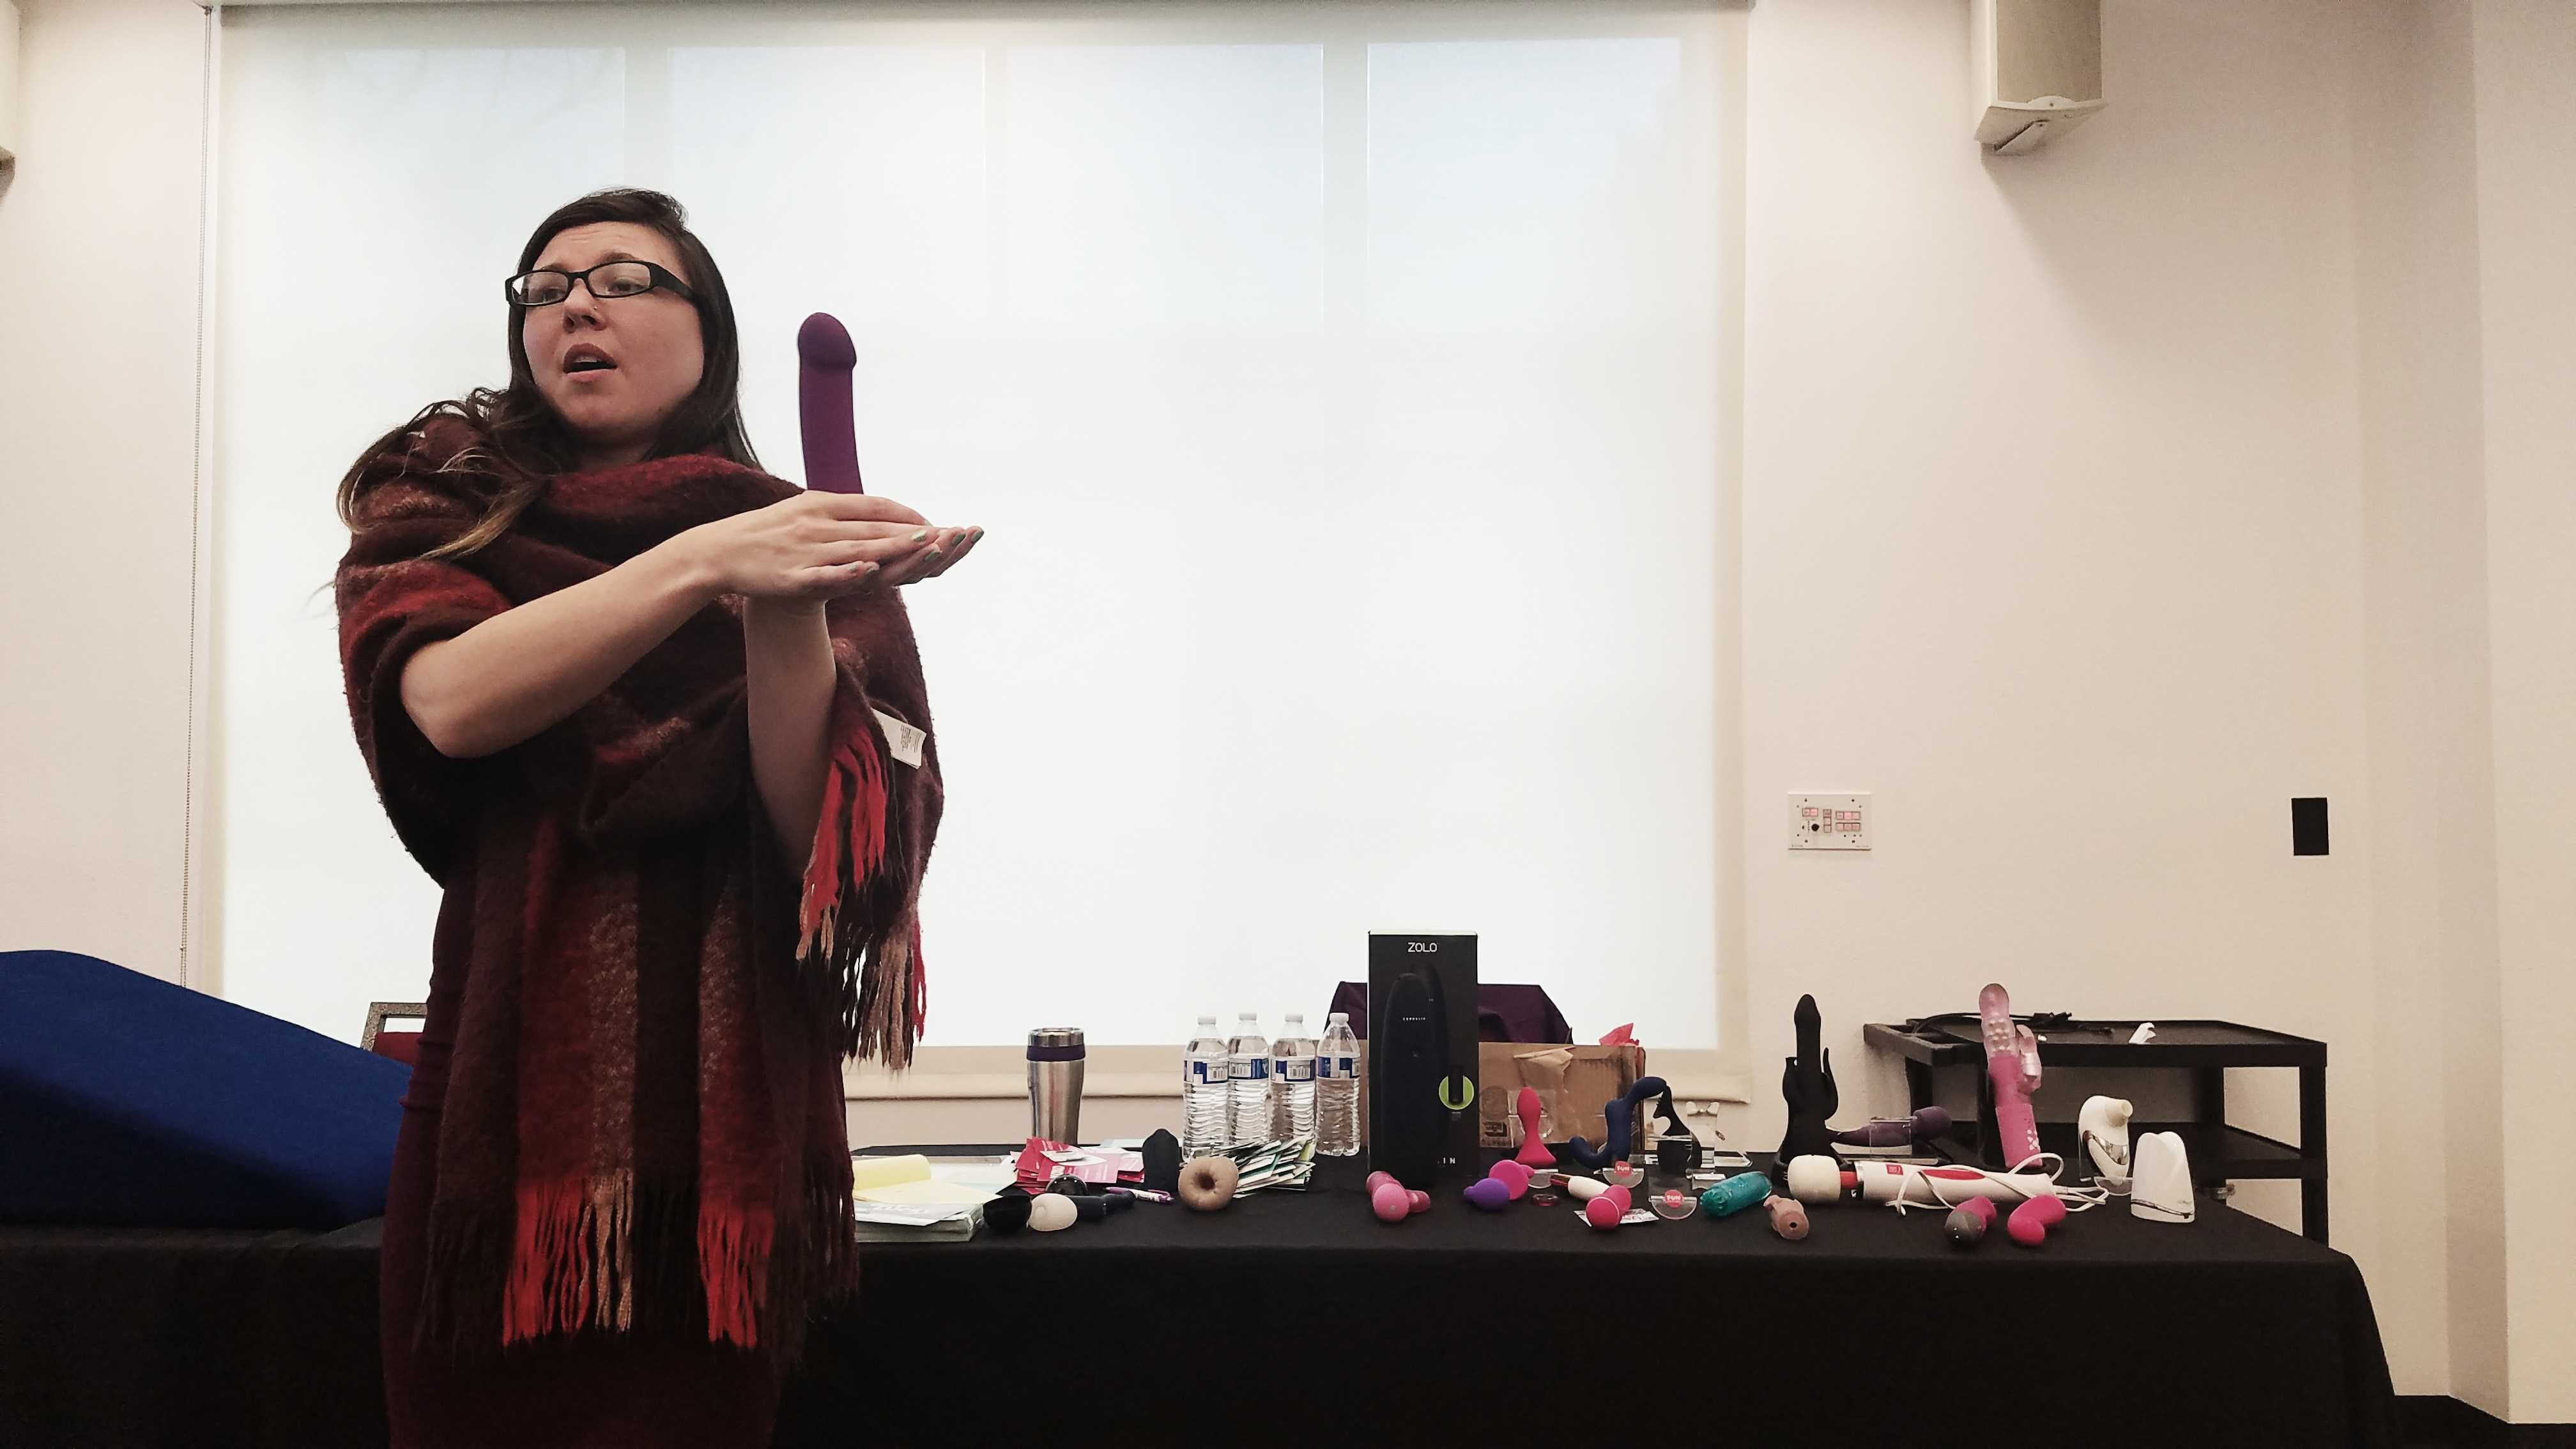 Hunter Kelch, sexual health advisor at A Touch of Romance in Tarzana, during her sex toys workshop. Photo credit: Christine Martinez